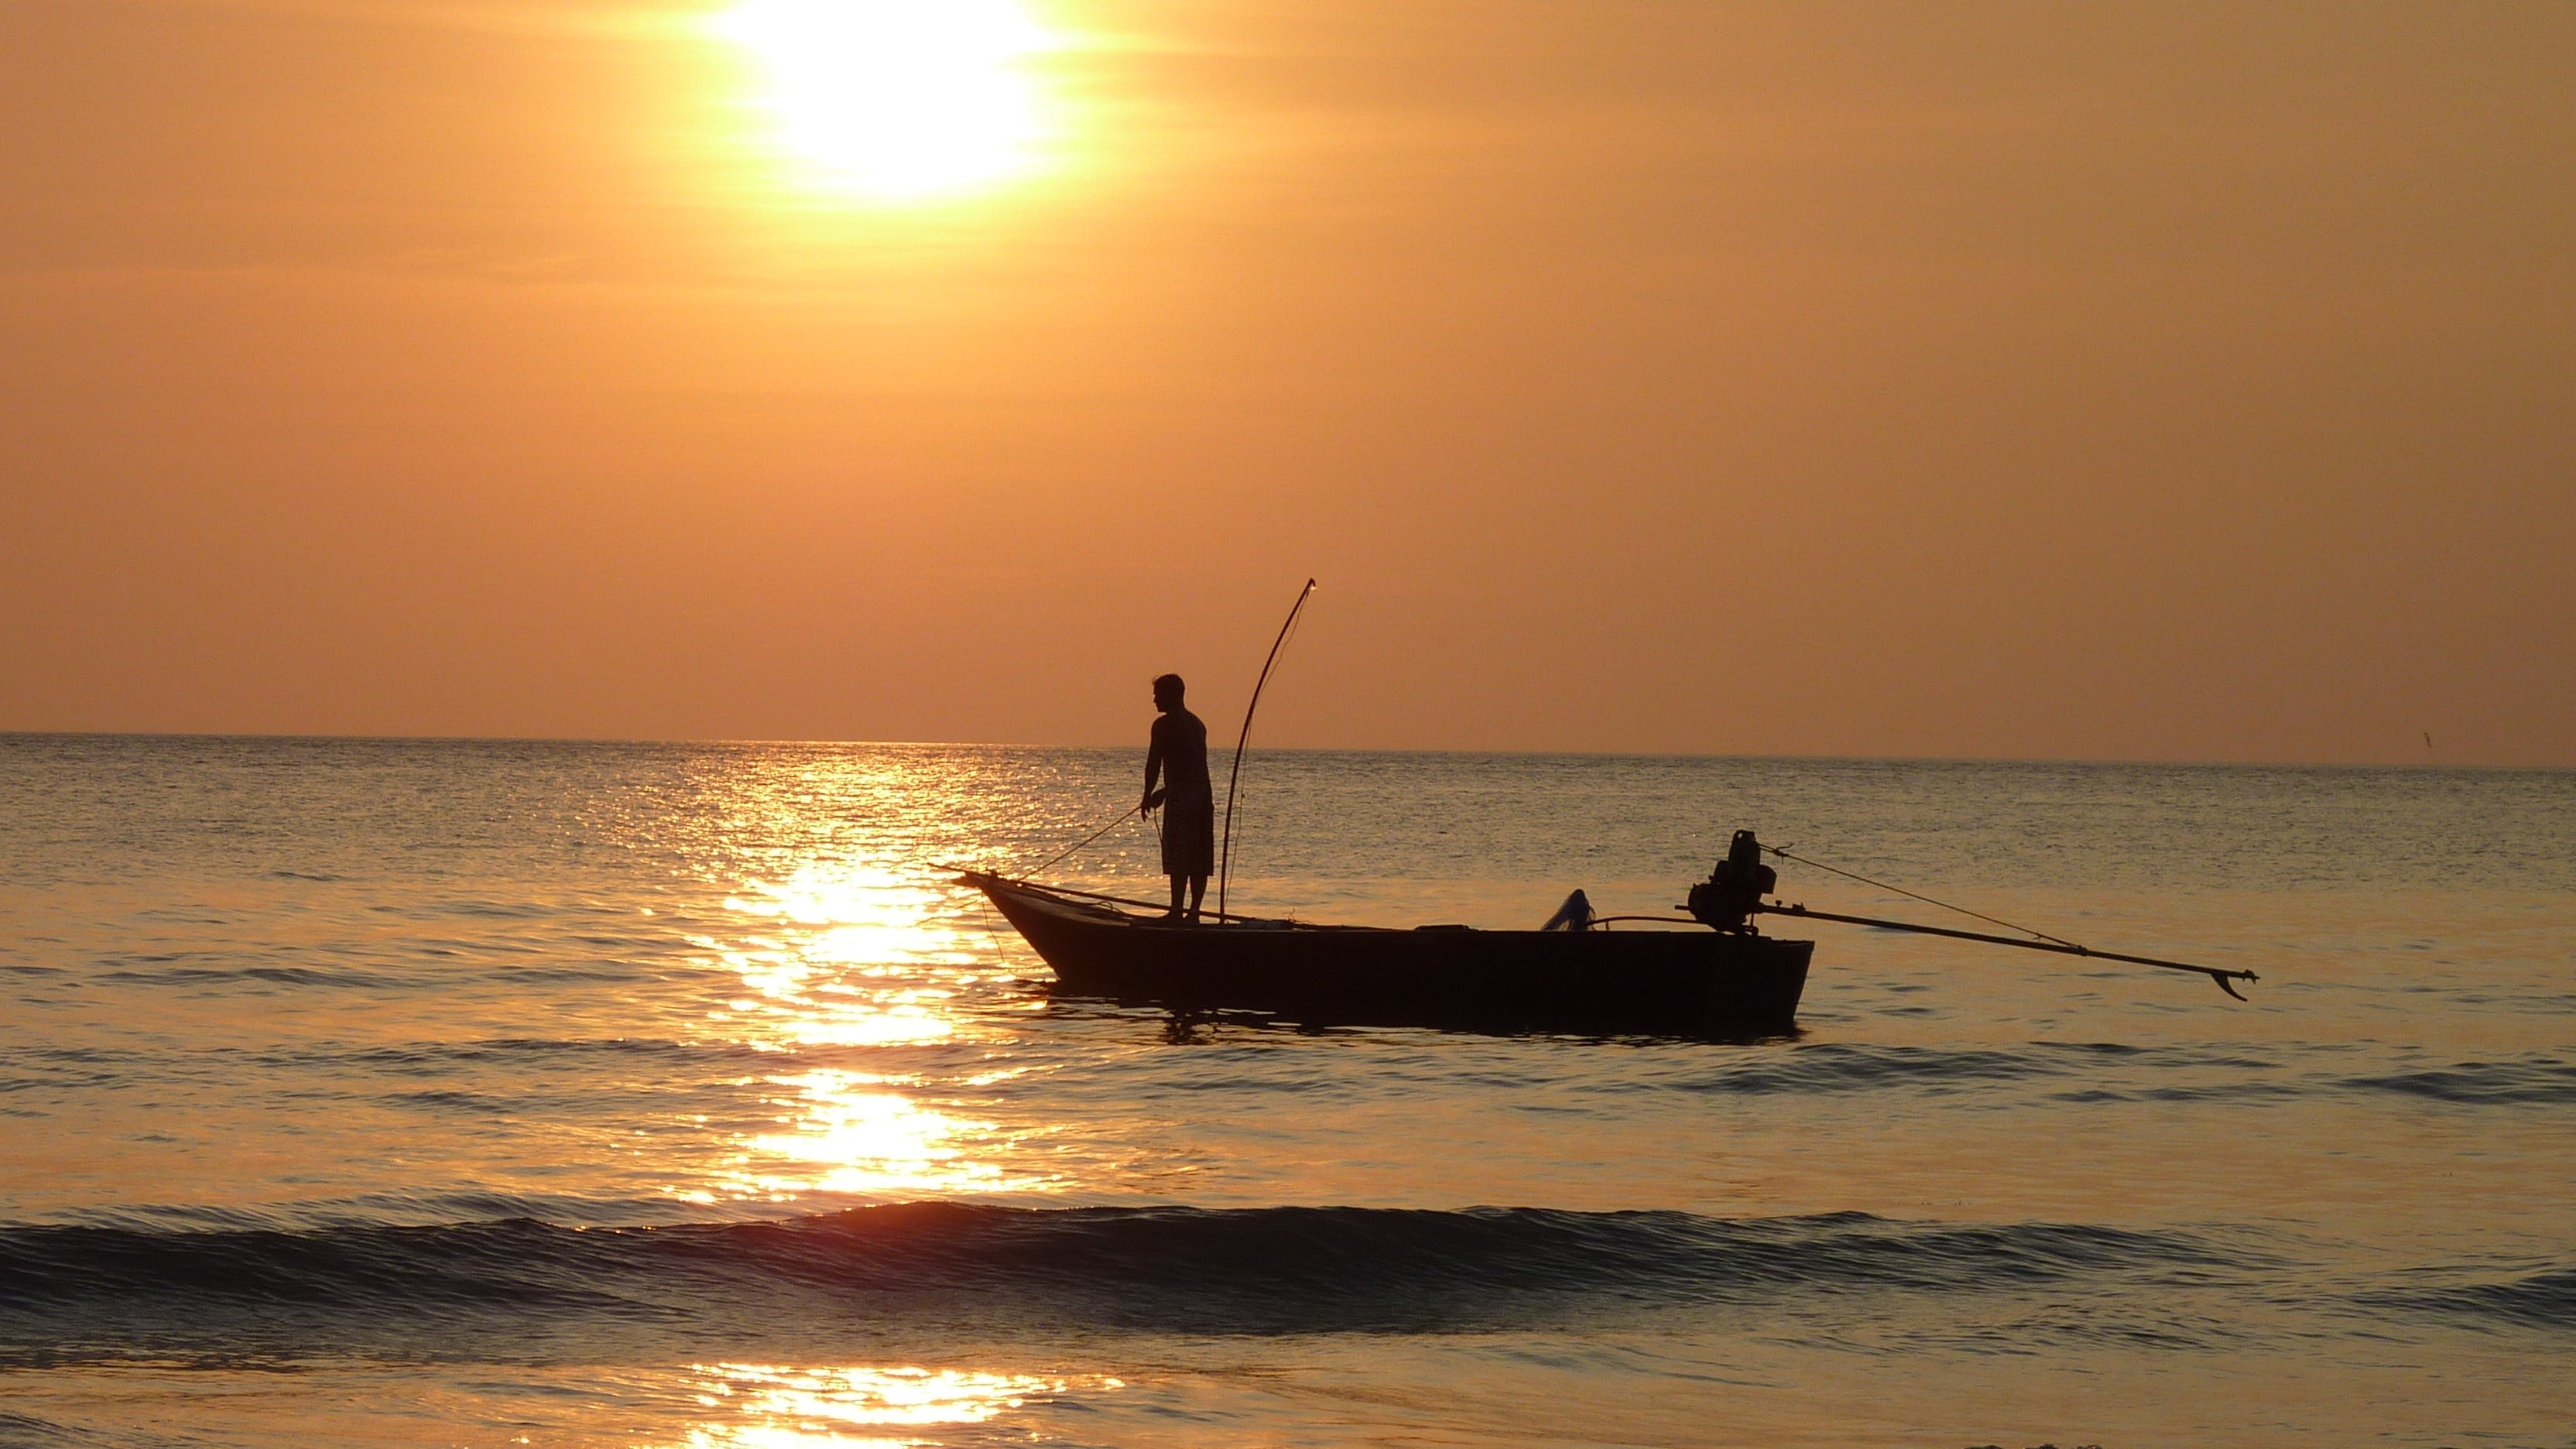 Silhouette Photography of Two Fishermen on Boat during Sunset